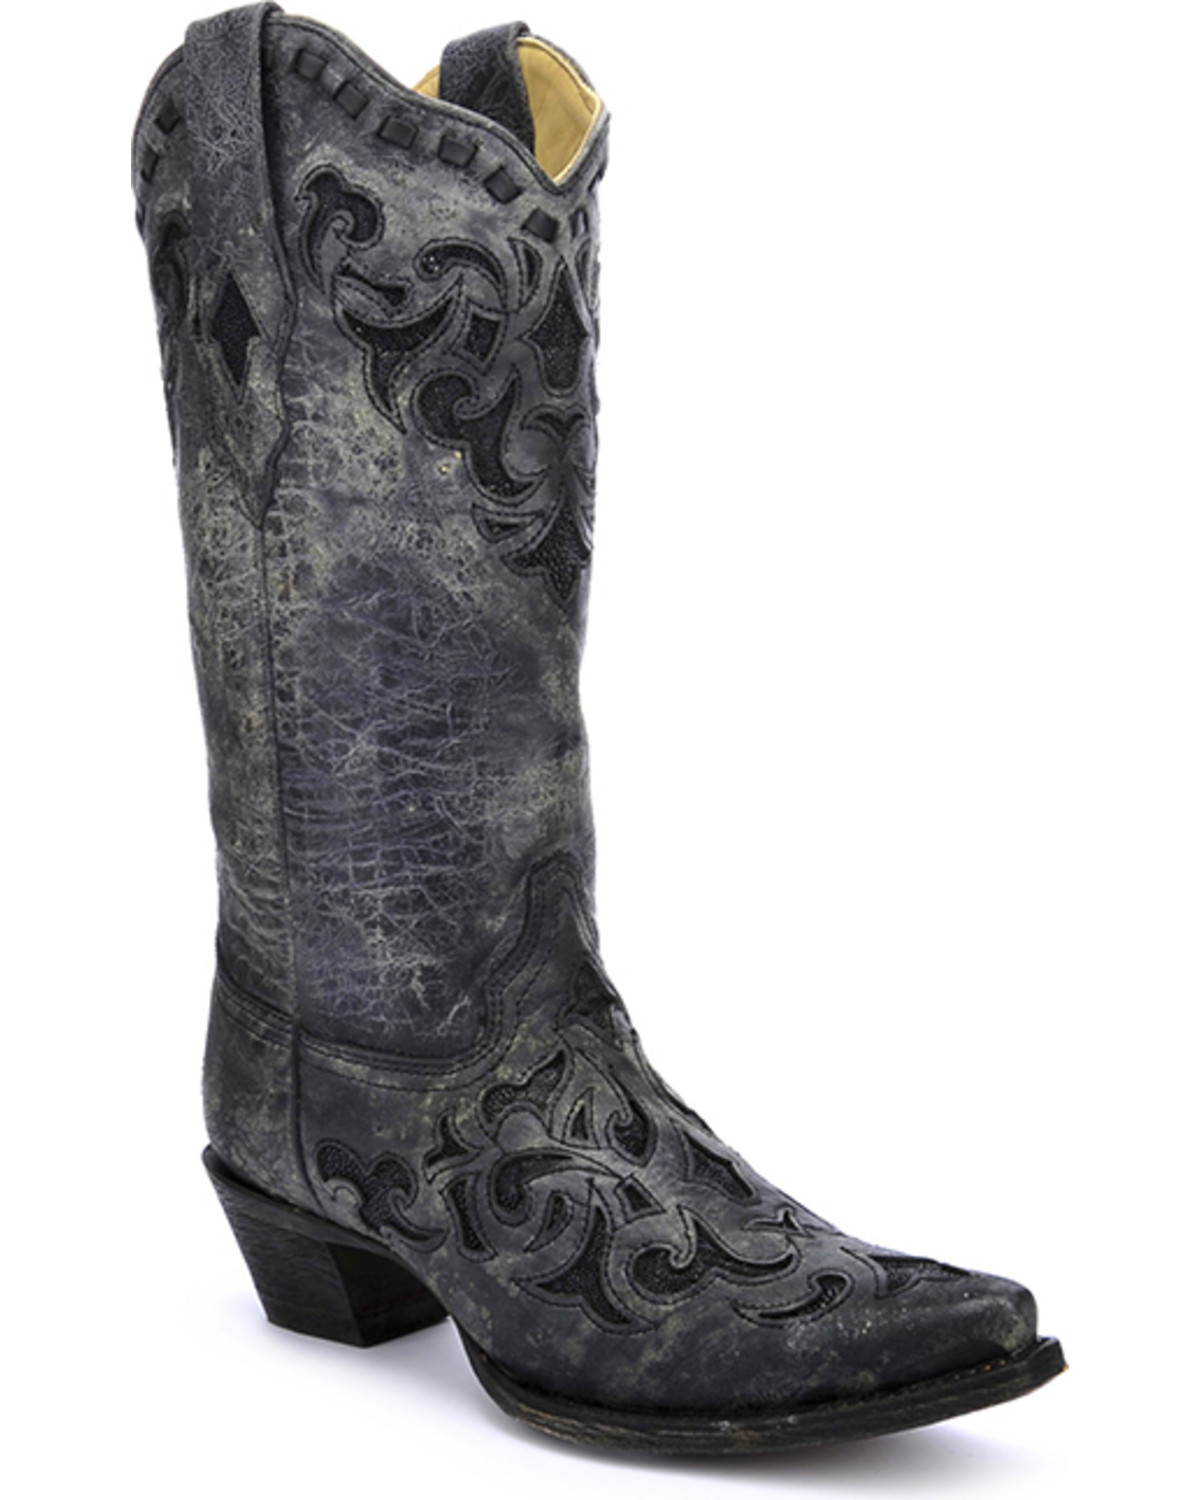 Corral Women S Stingray Inlay Cowgirl Boots Snip Toe